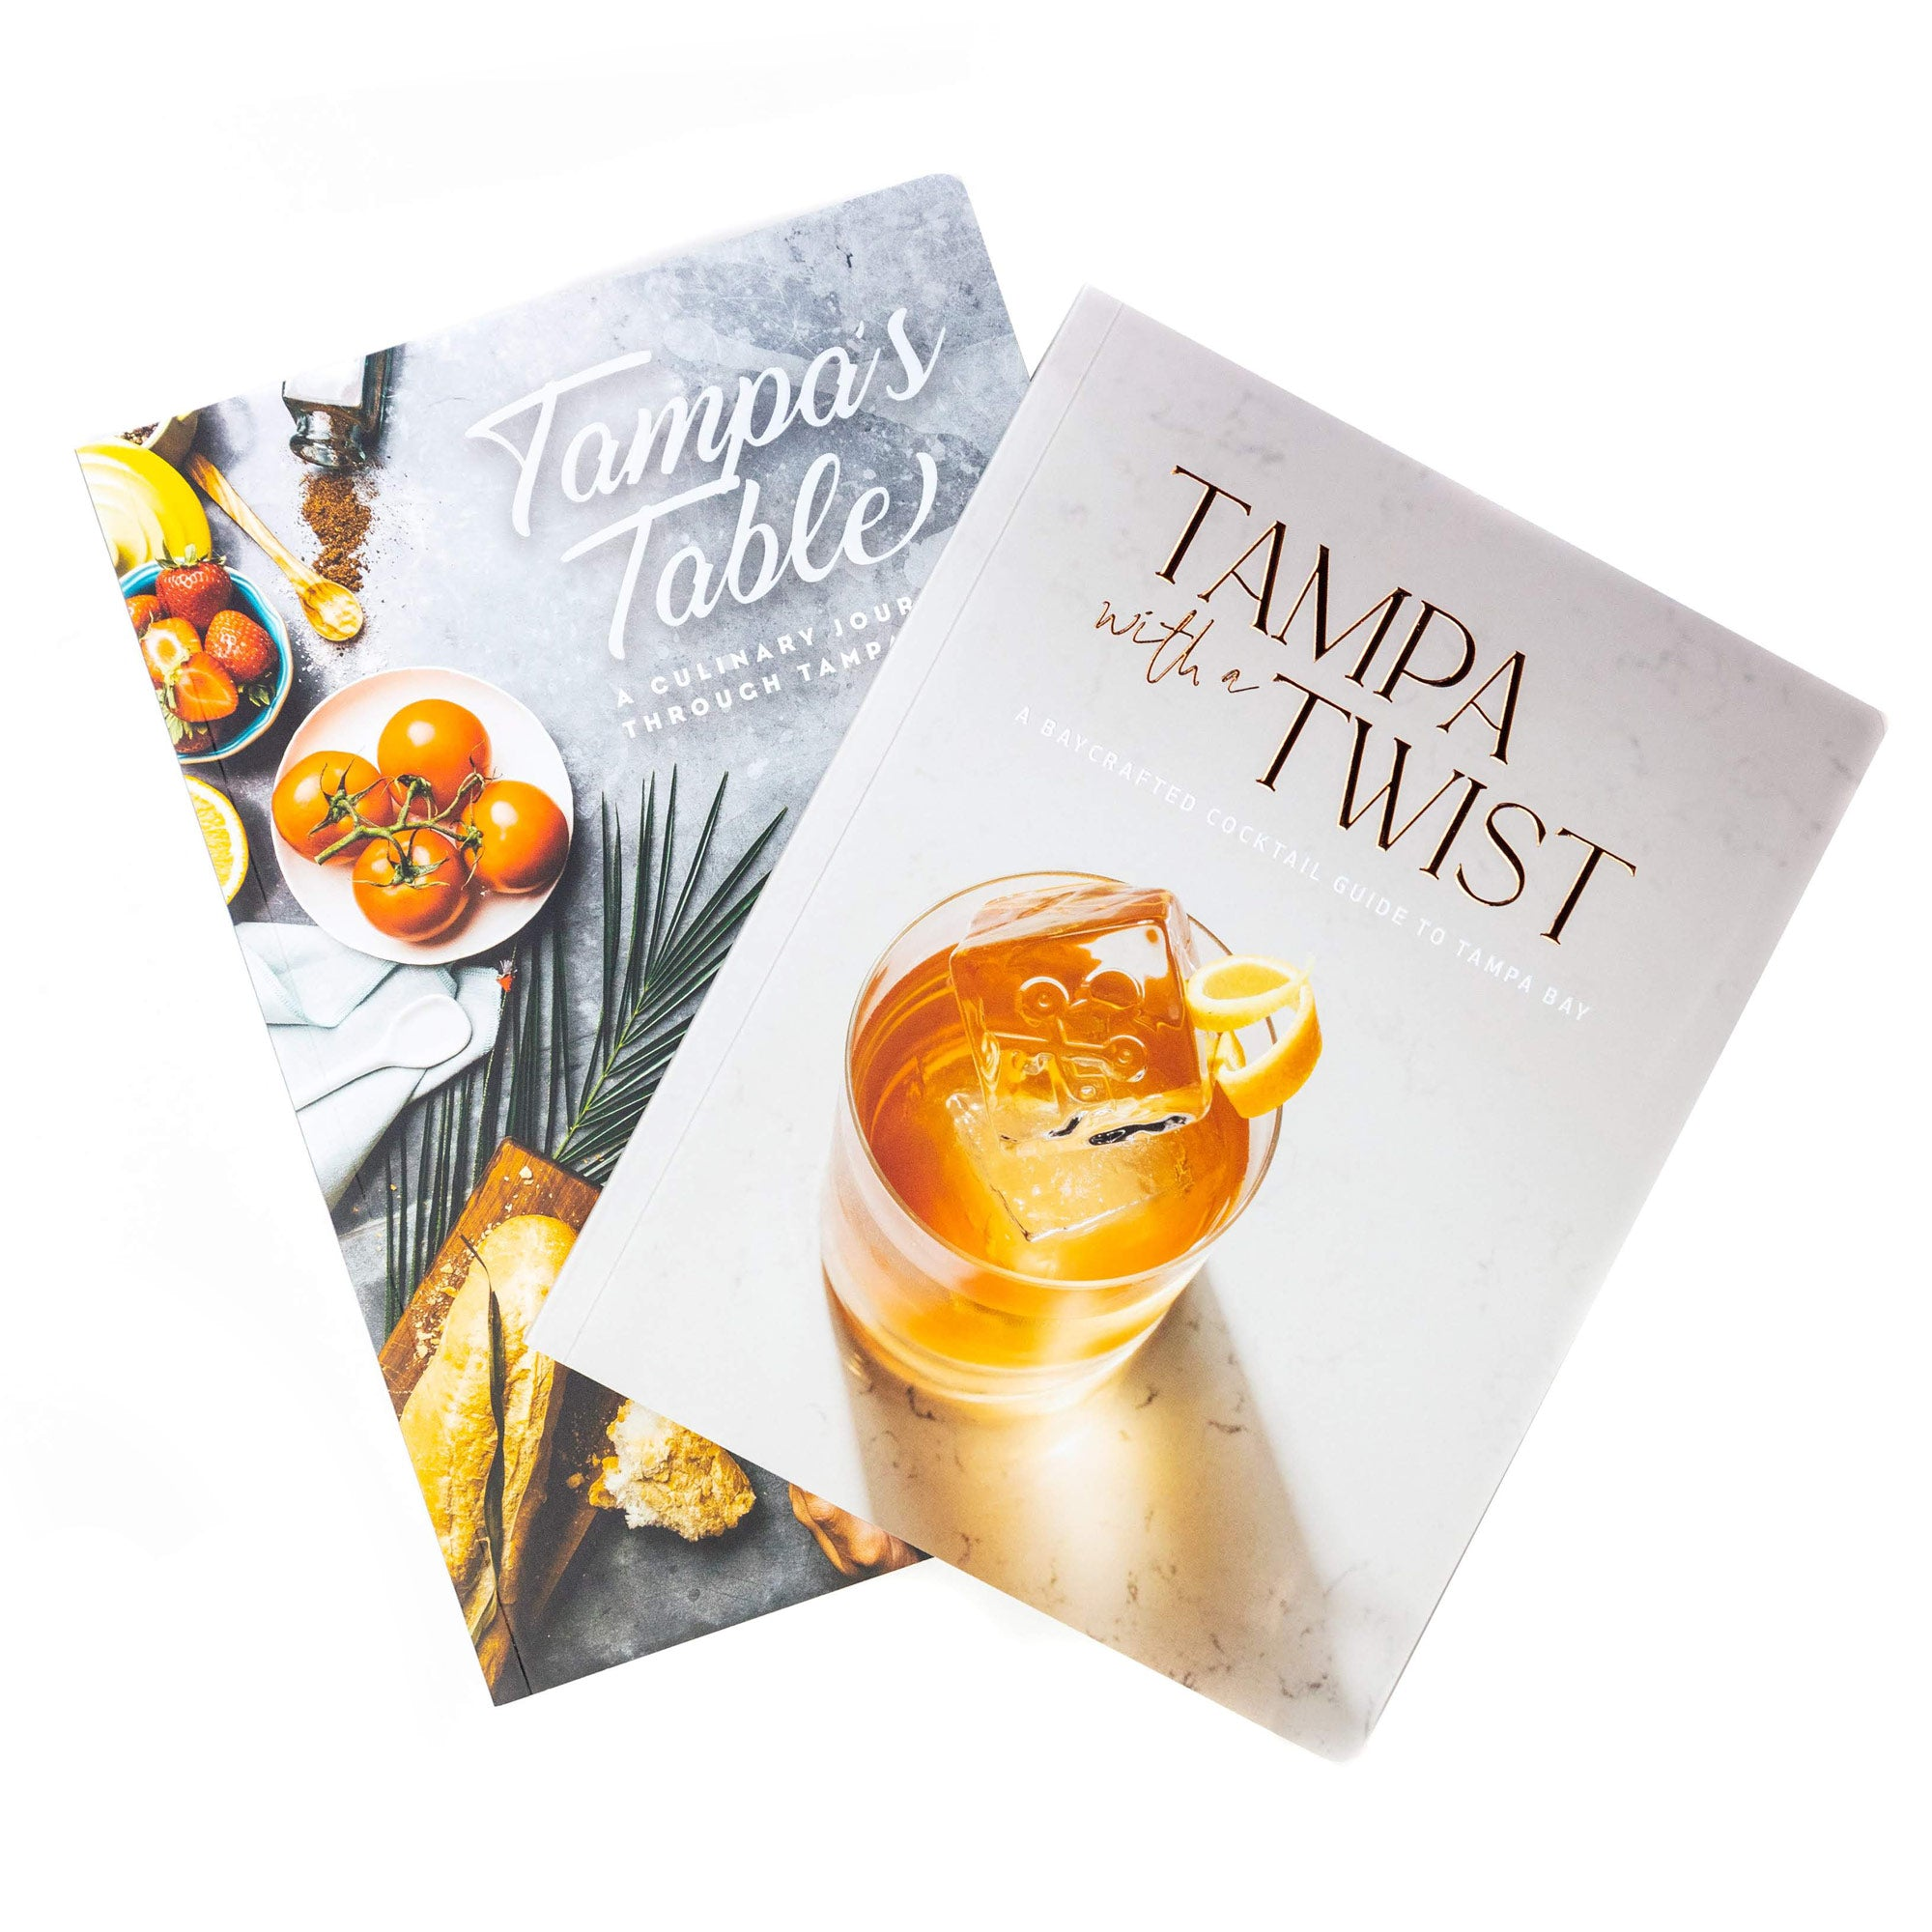 Tampa's Table & Tampa with a Twist - #TourismStrong Bundle